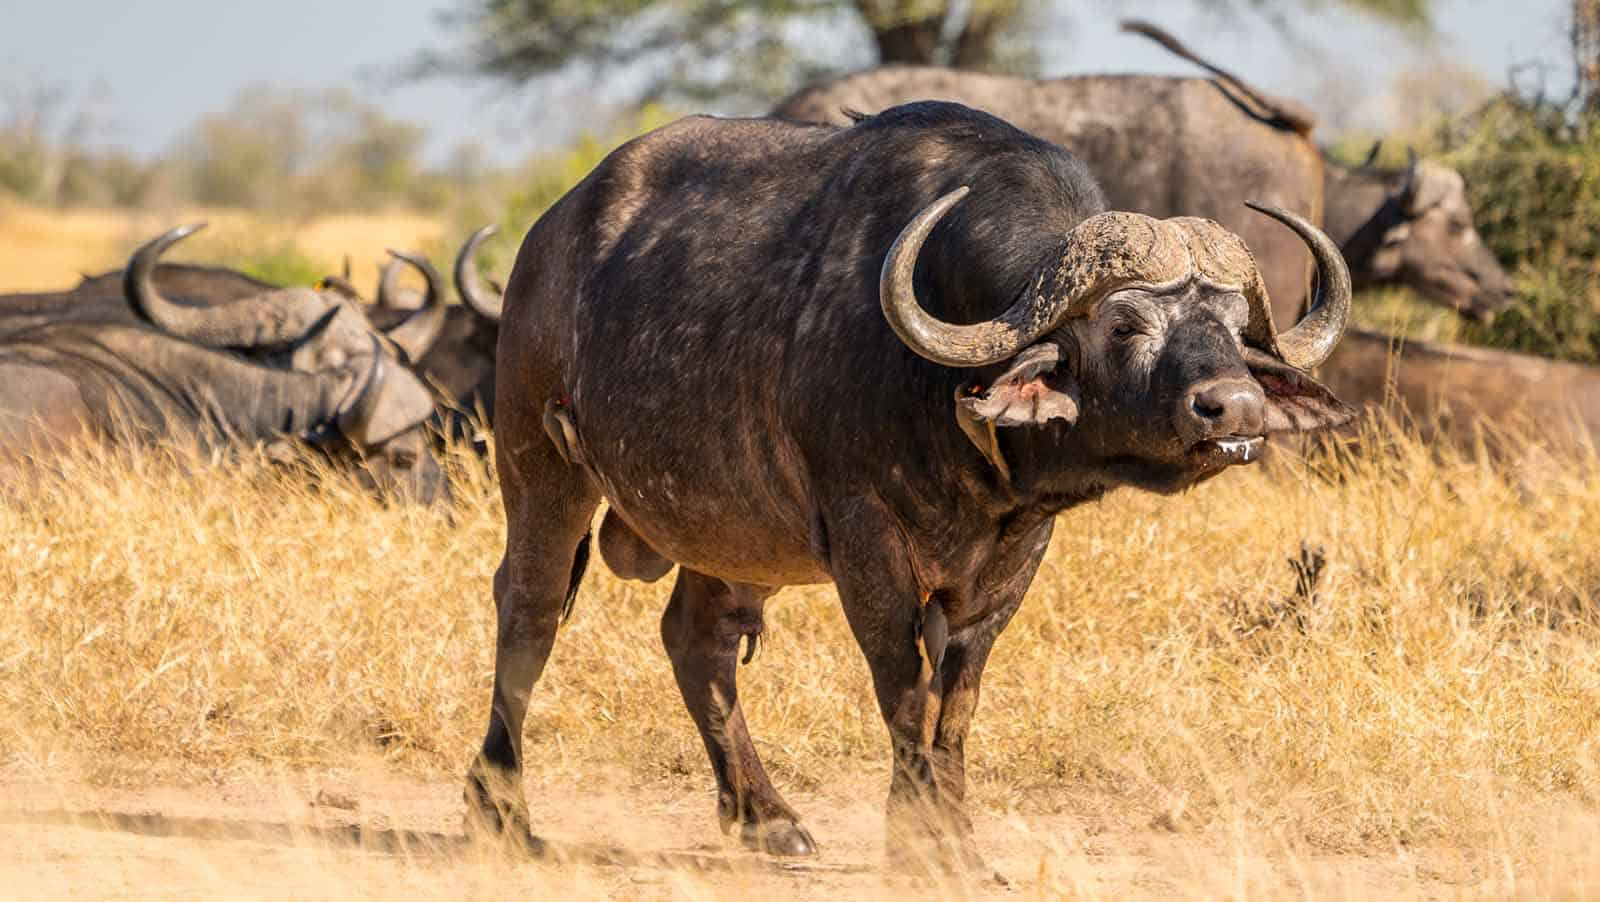 Cape Buffalo In South Africa In The Kruger Park.